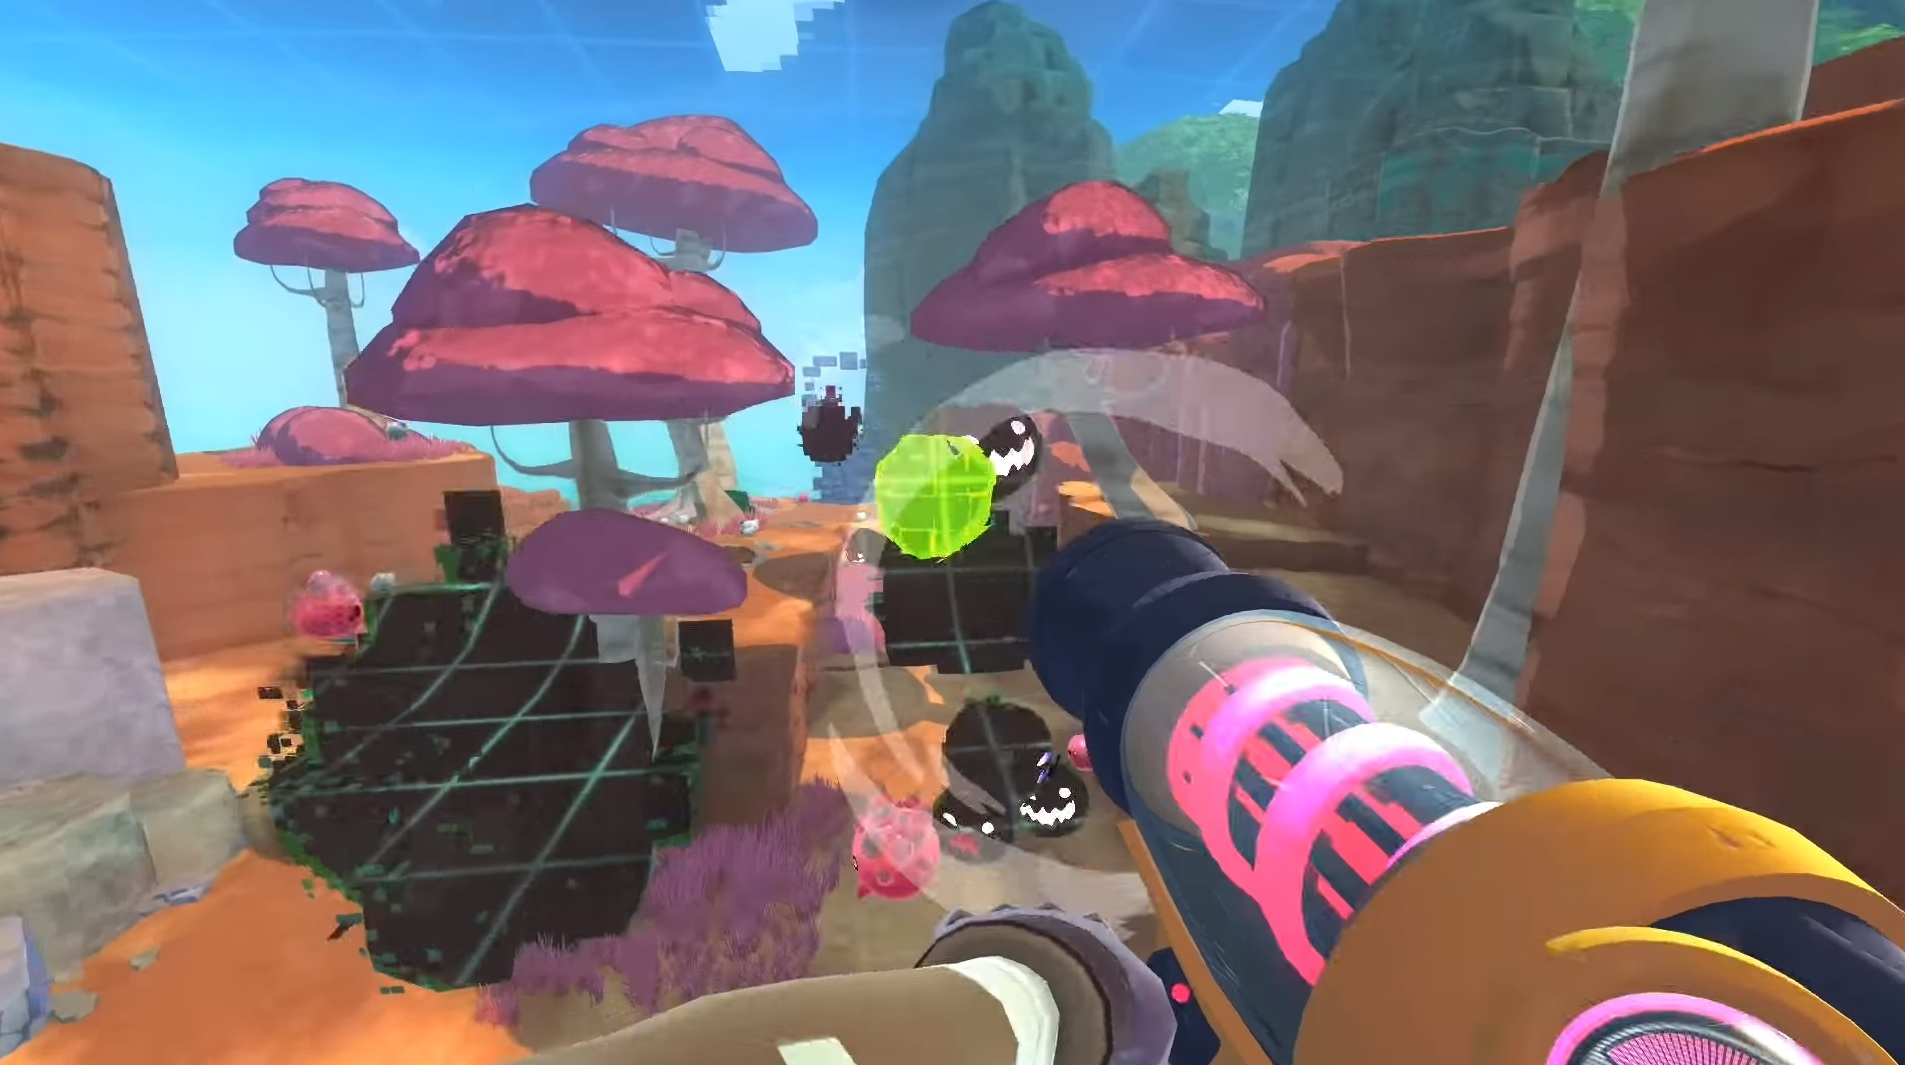 Slime Rancher's free update adds a digital world and virtual